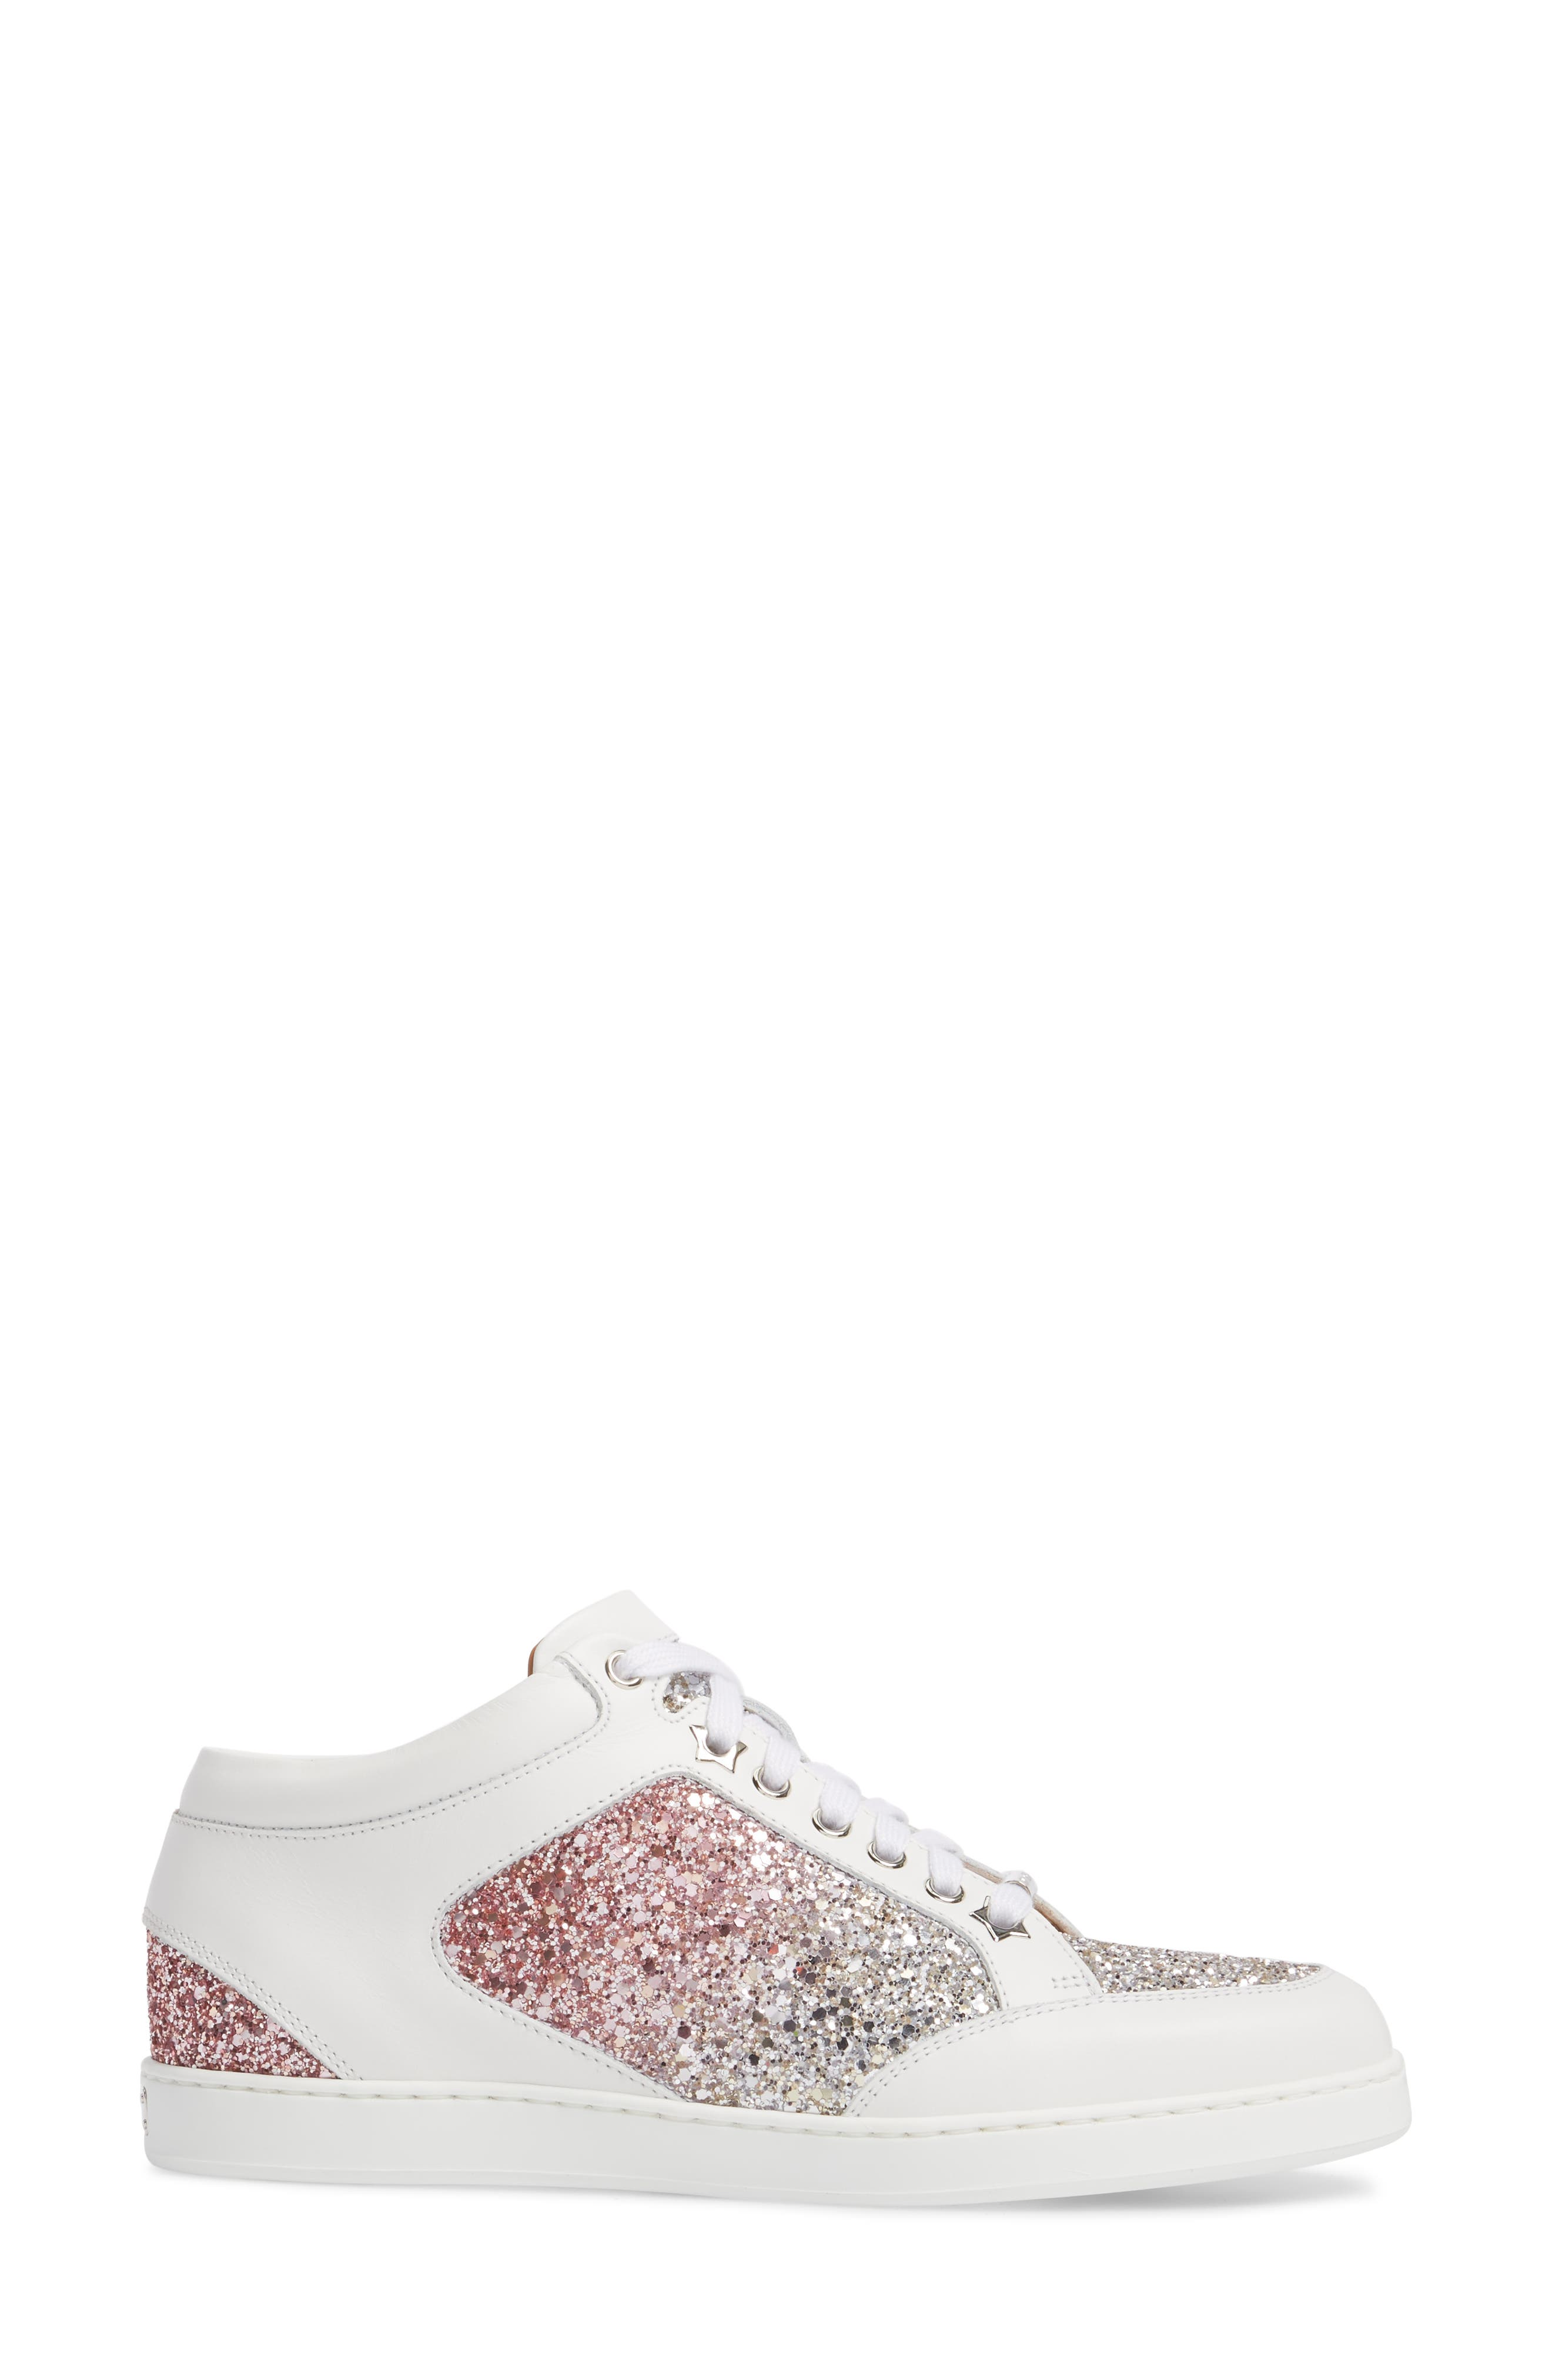 JIMMY CHOO,                             Miami Low Top Sneaker,                             Alternate thumbnail 3, color,                             650